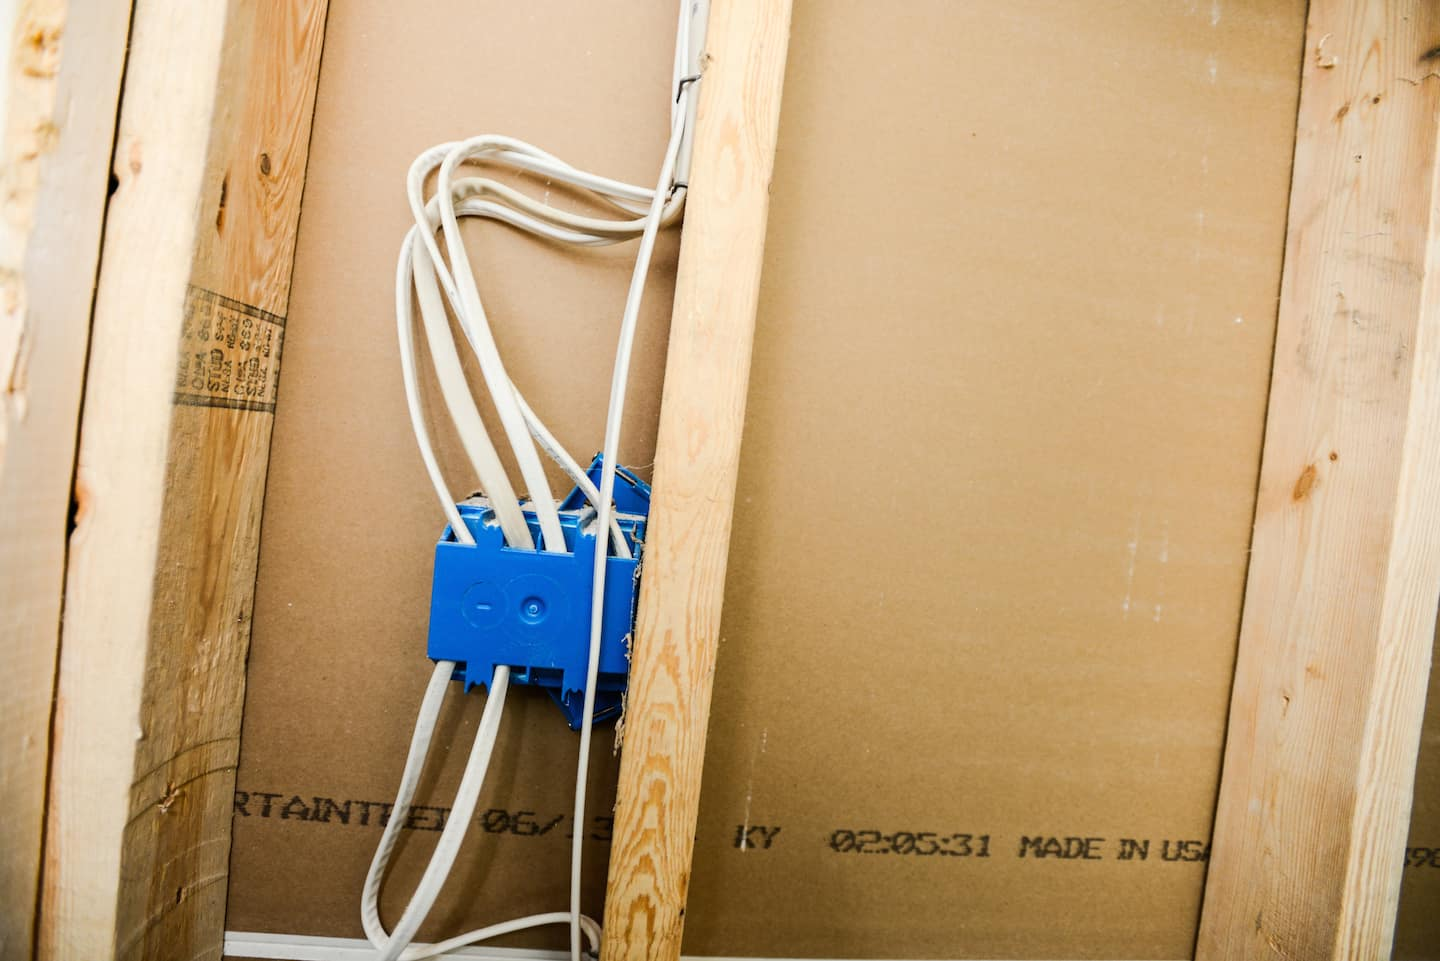 Scary Electrical Wiring Not Permitted When Remodels Dont Meet Code Angies List